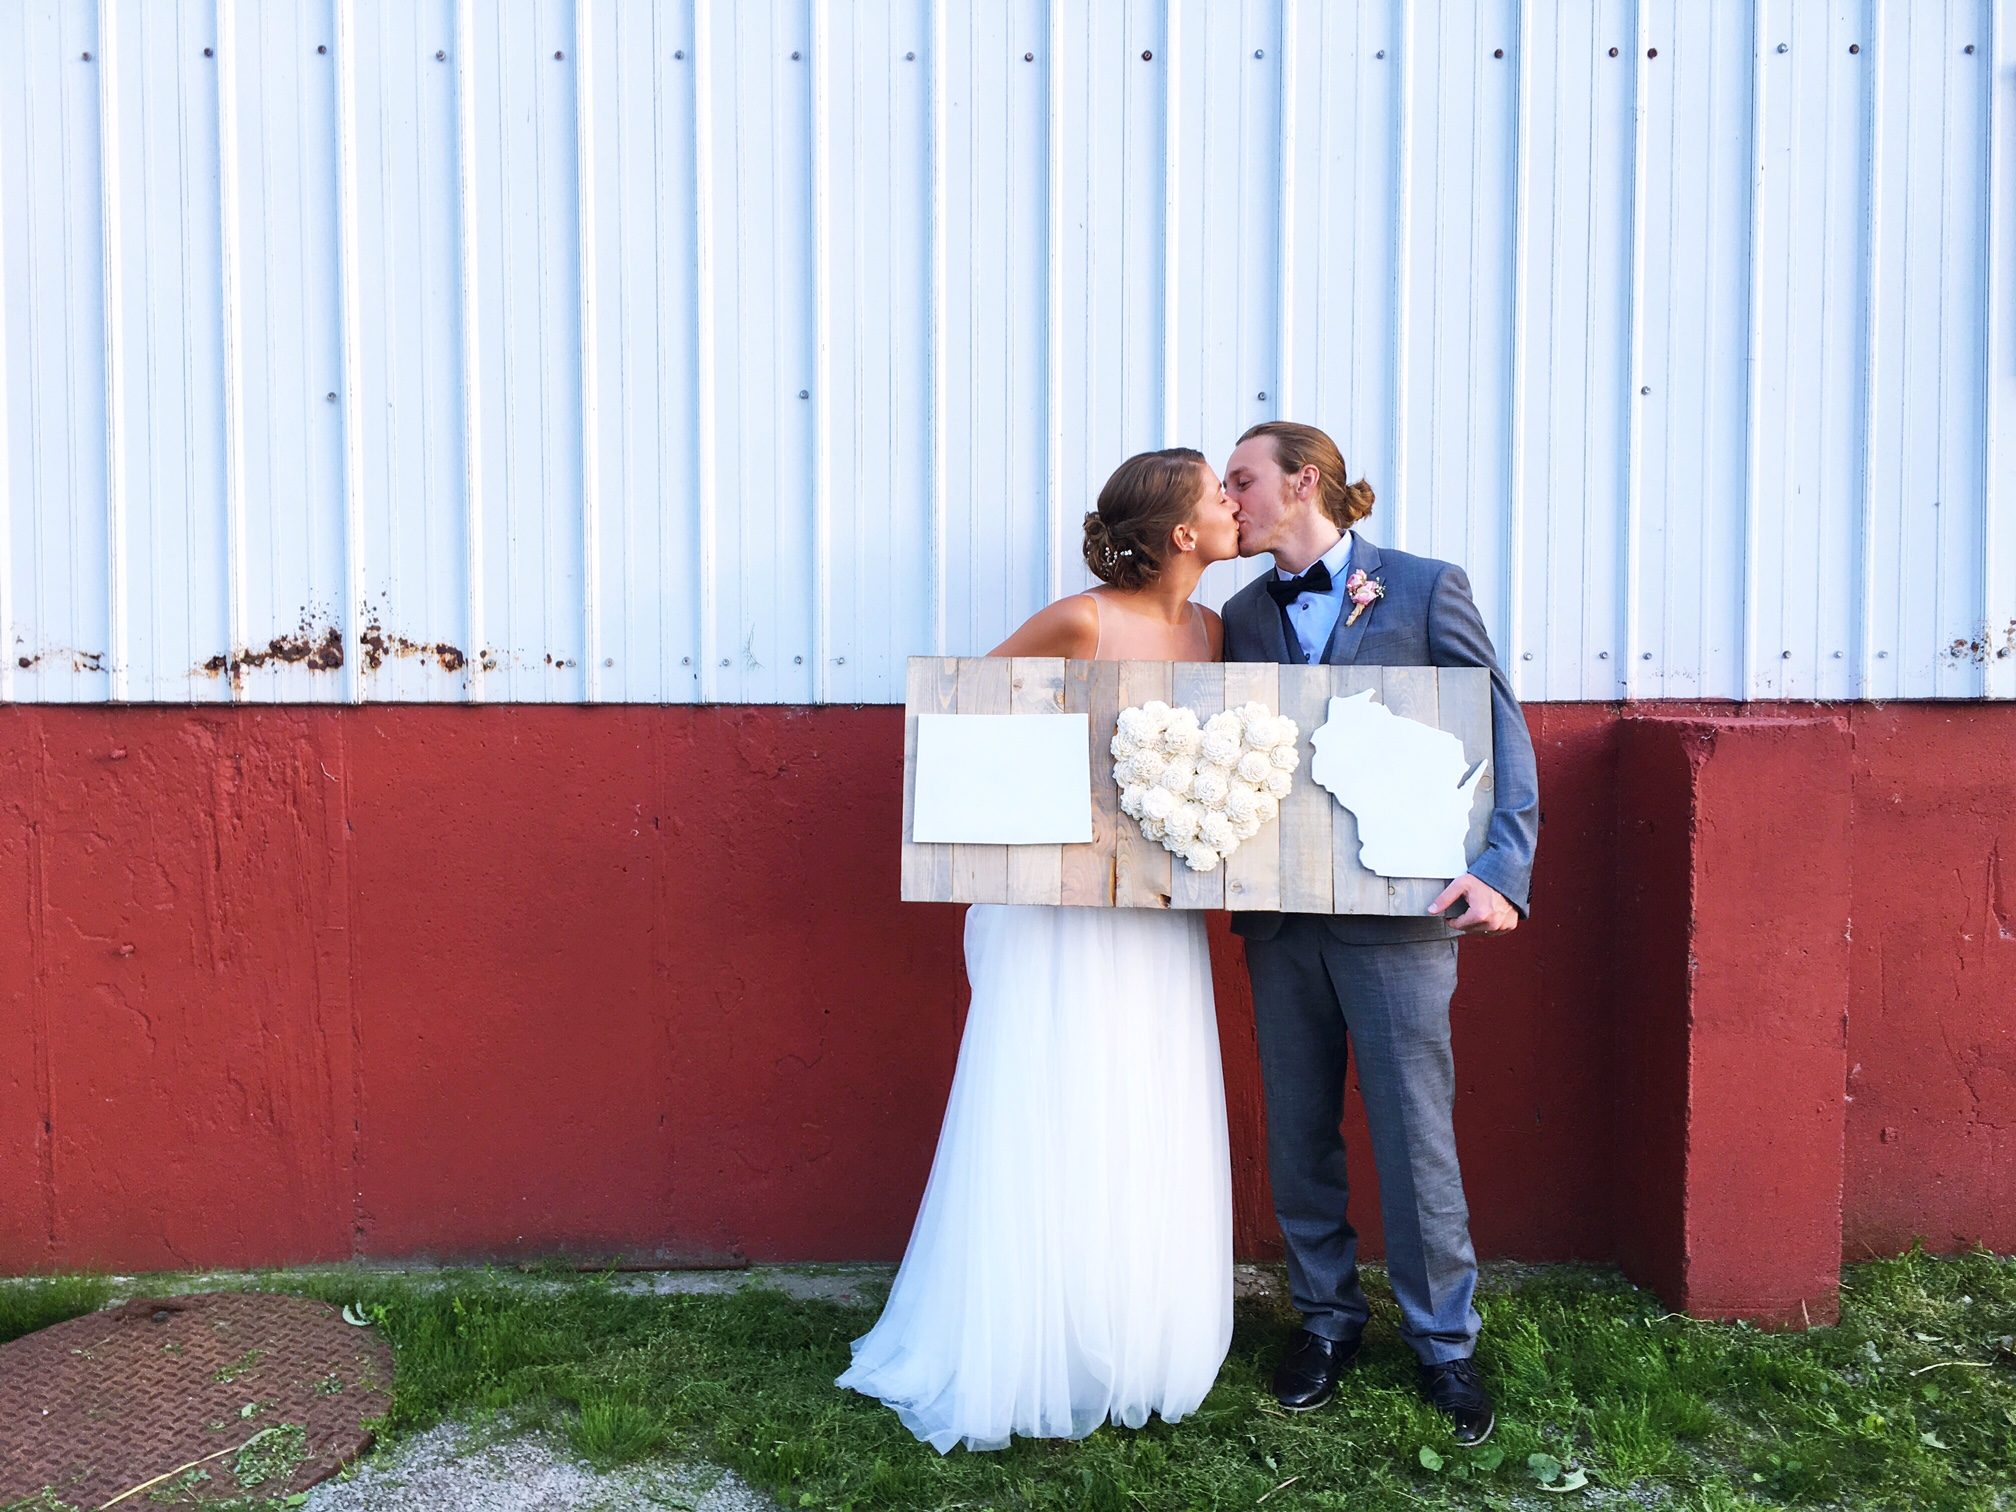 The Beauty of Marriage and a Rustic Barn Wedding